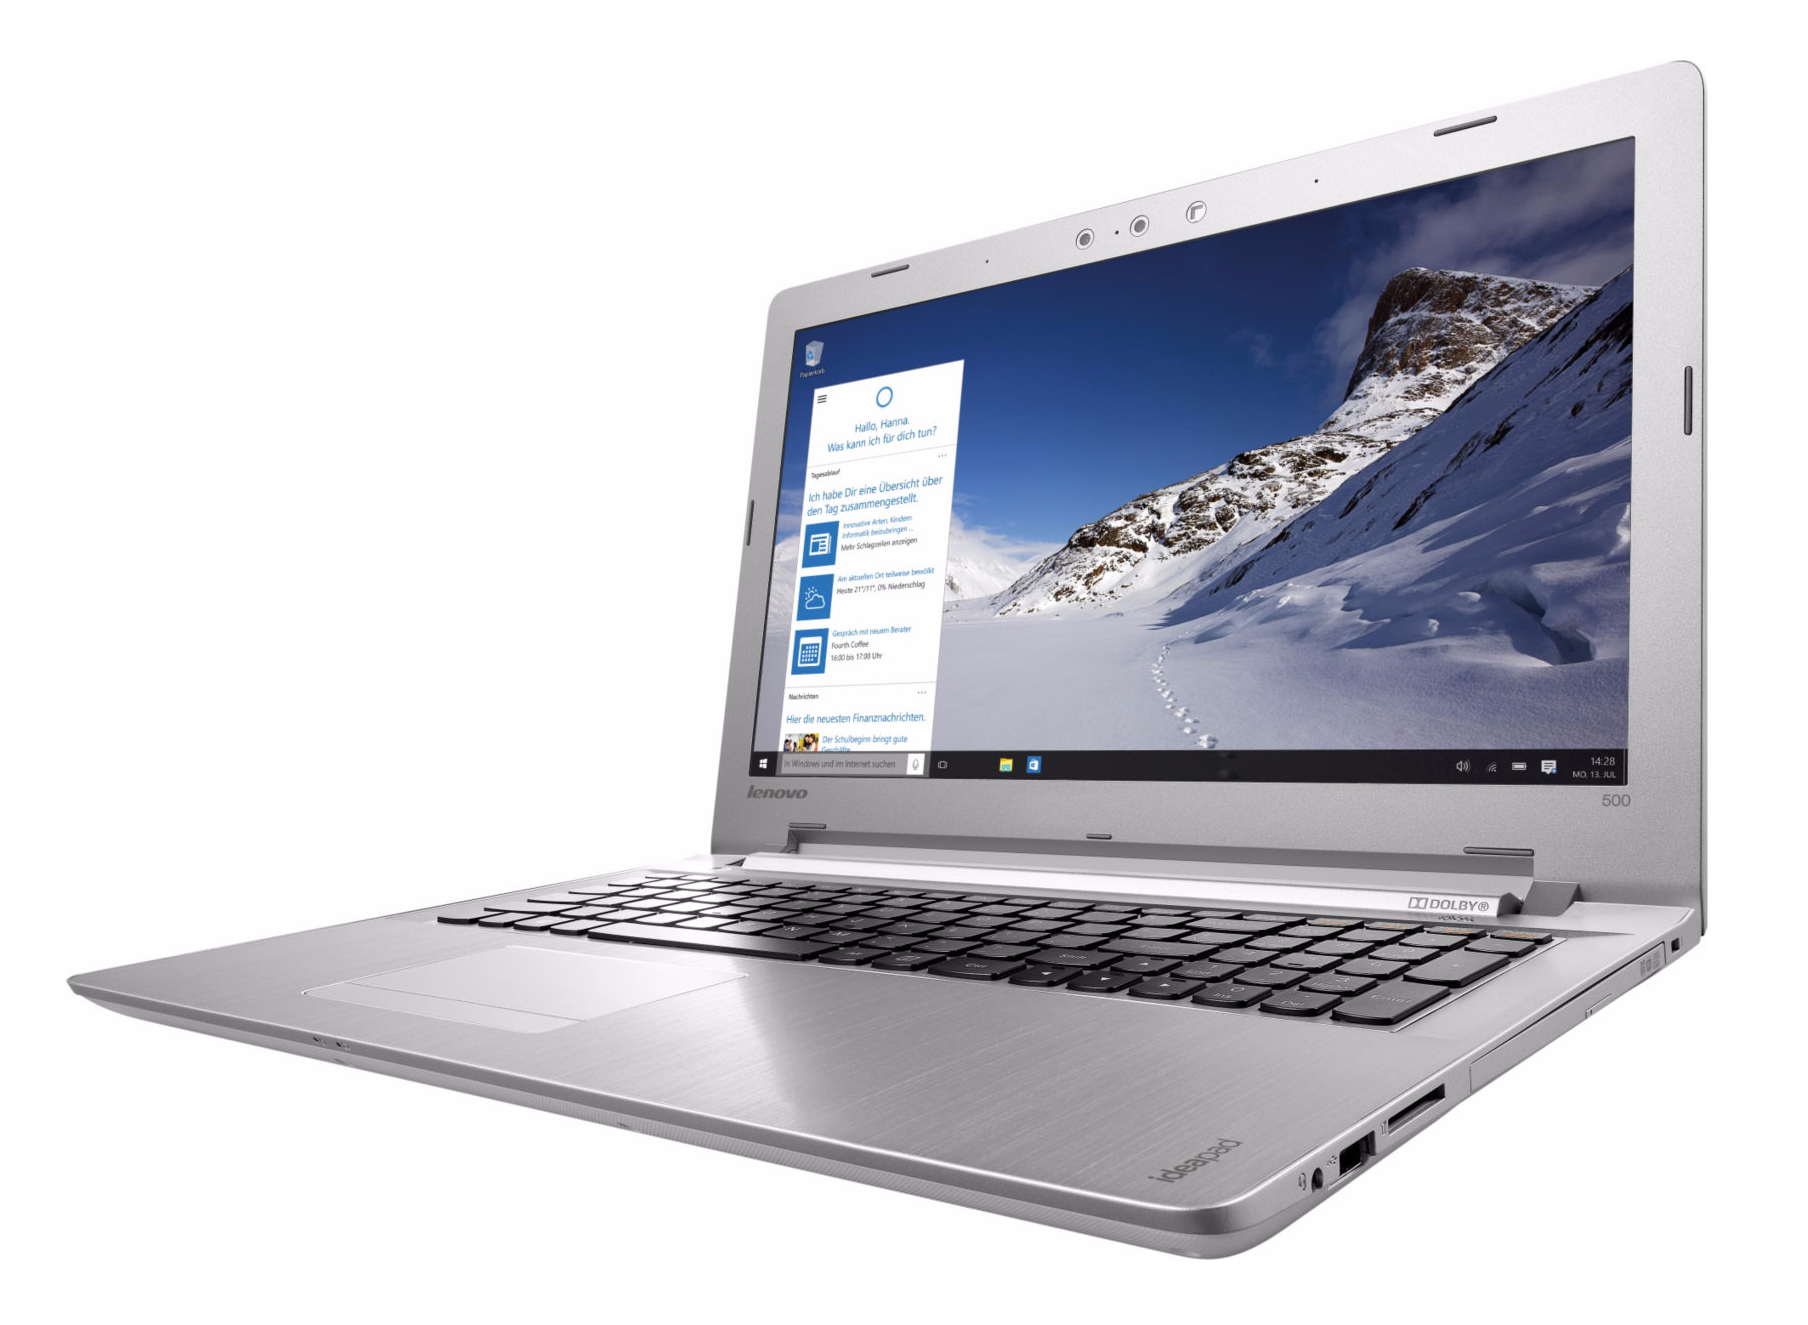 Lenovo IdeaPad 500-15ISK Notebook Review - NotebookCheck.net Reviews